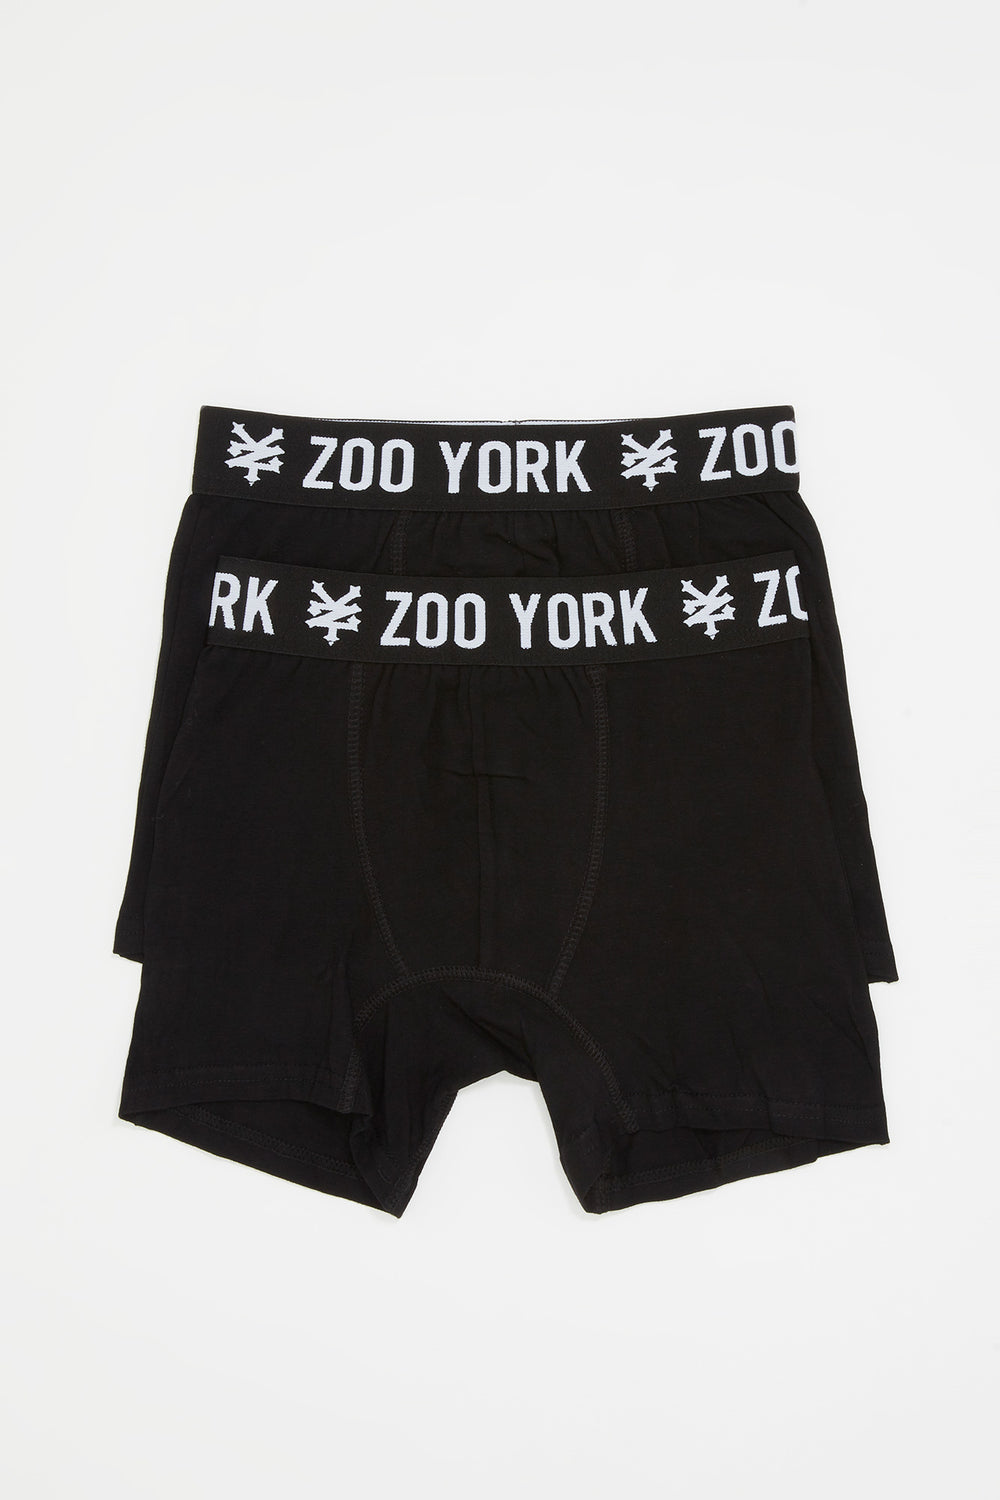 Zoo York Boys 2-Pack Cotton Boxer Briefs Black